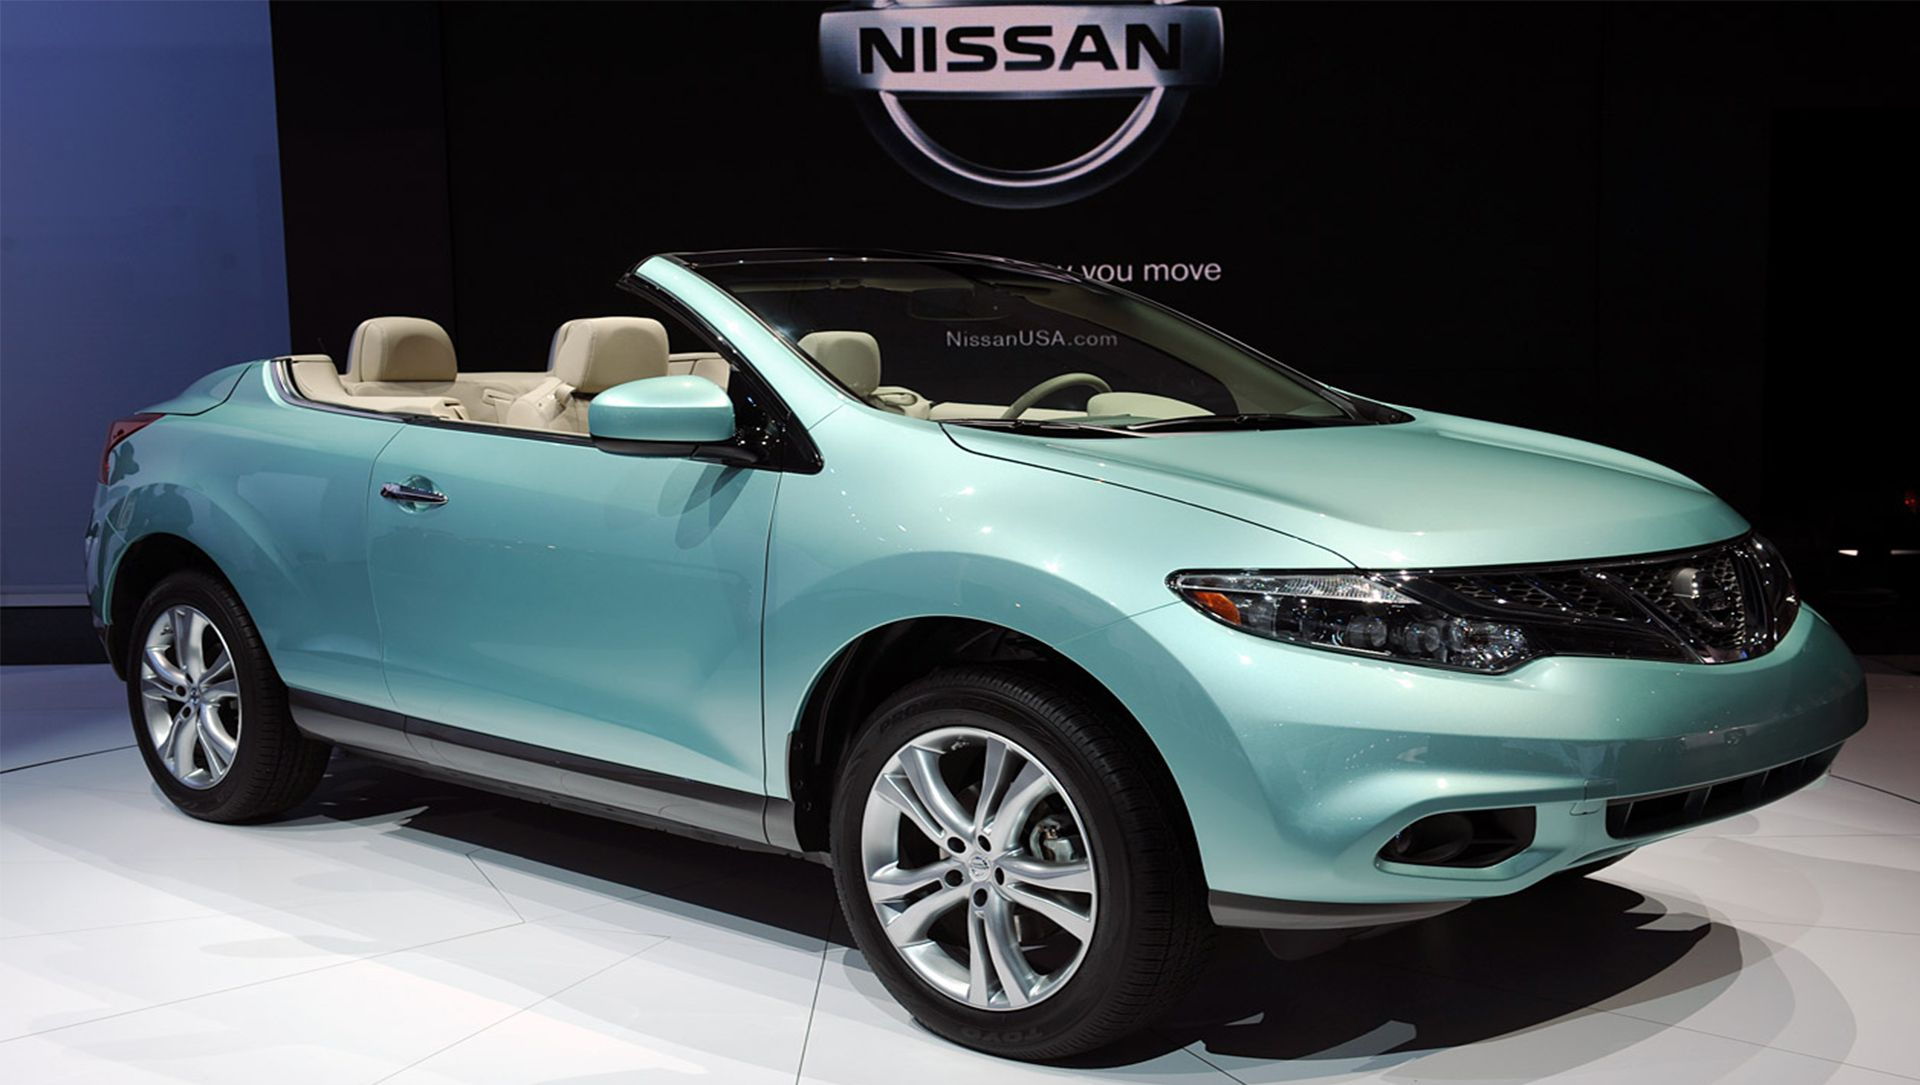 Nissan 2014 Murano CrossCabriolet Pricing